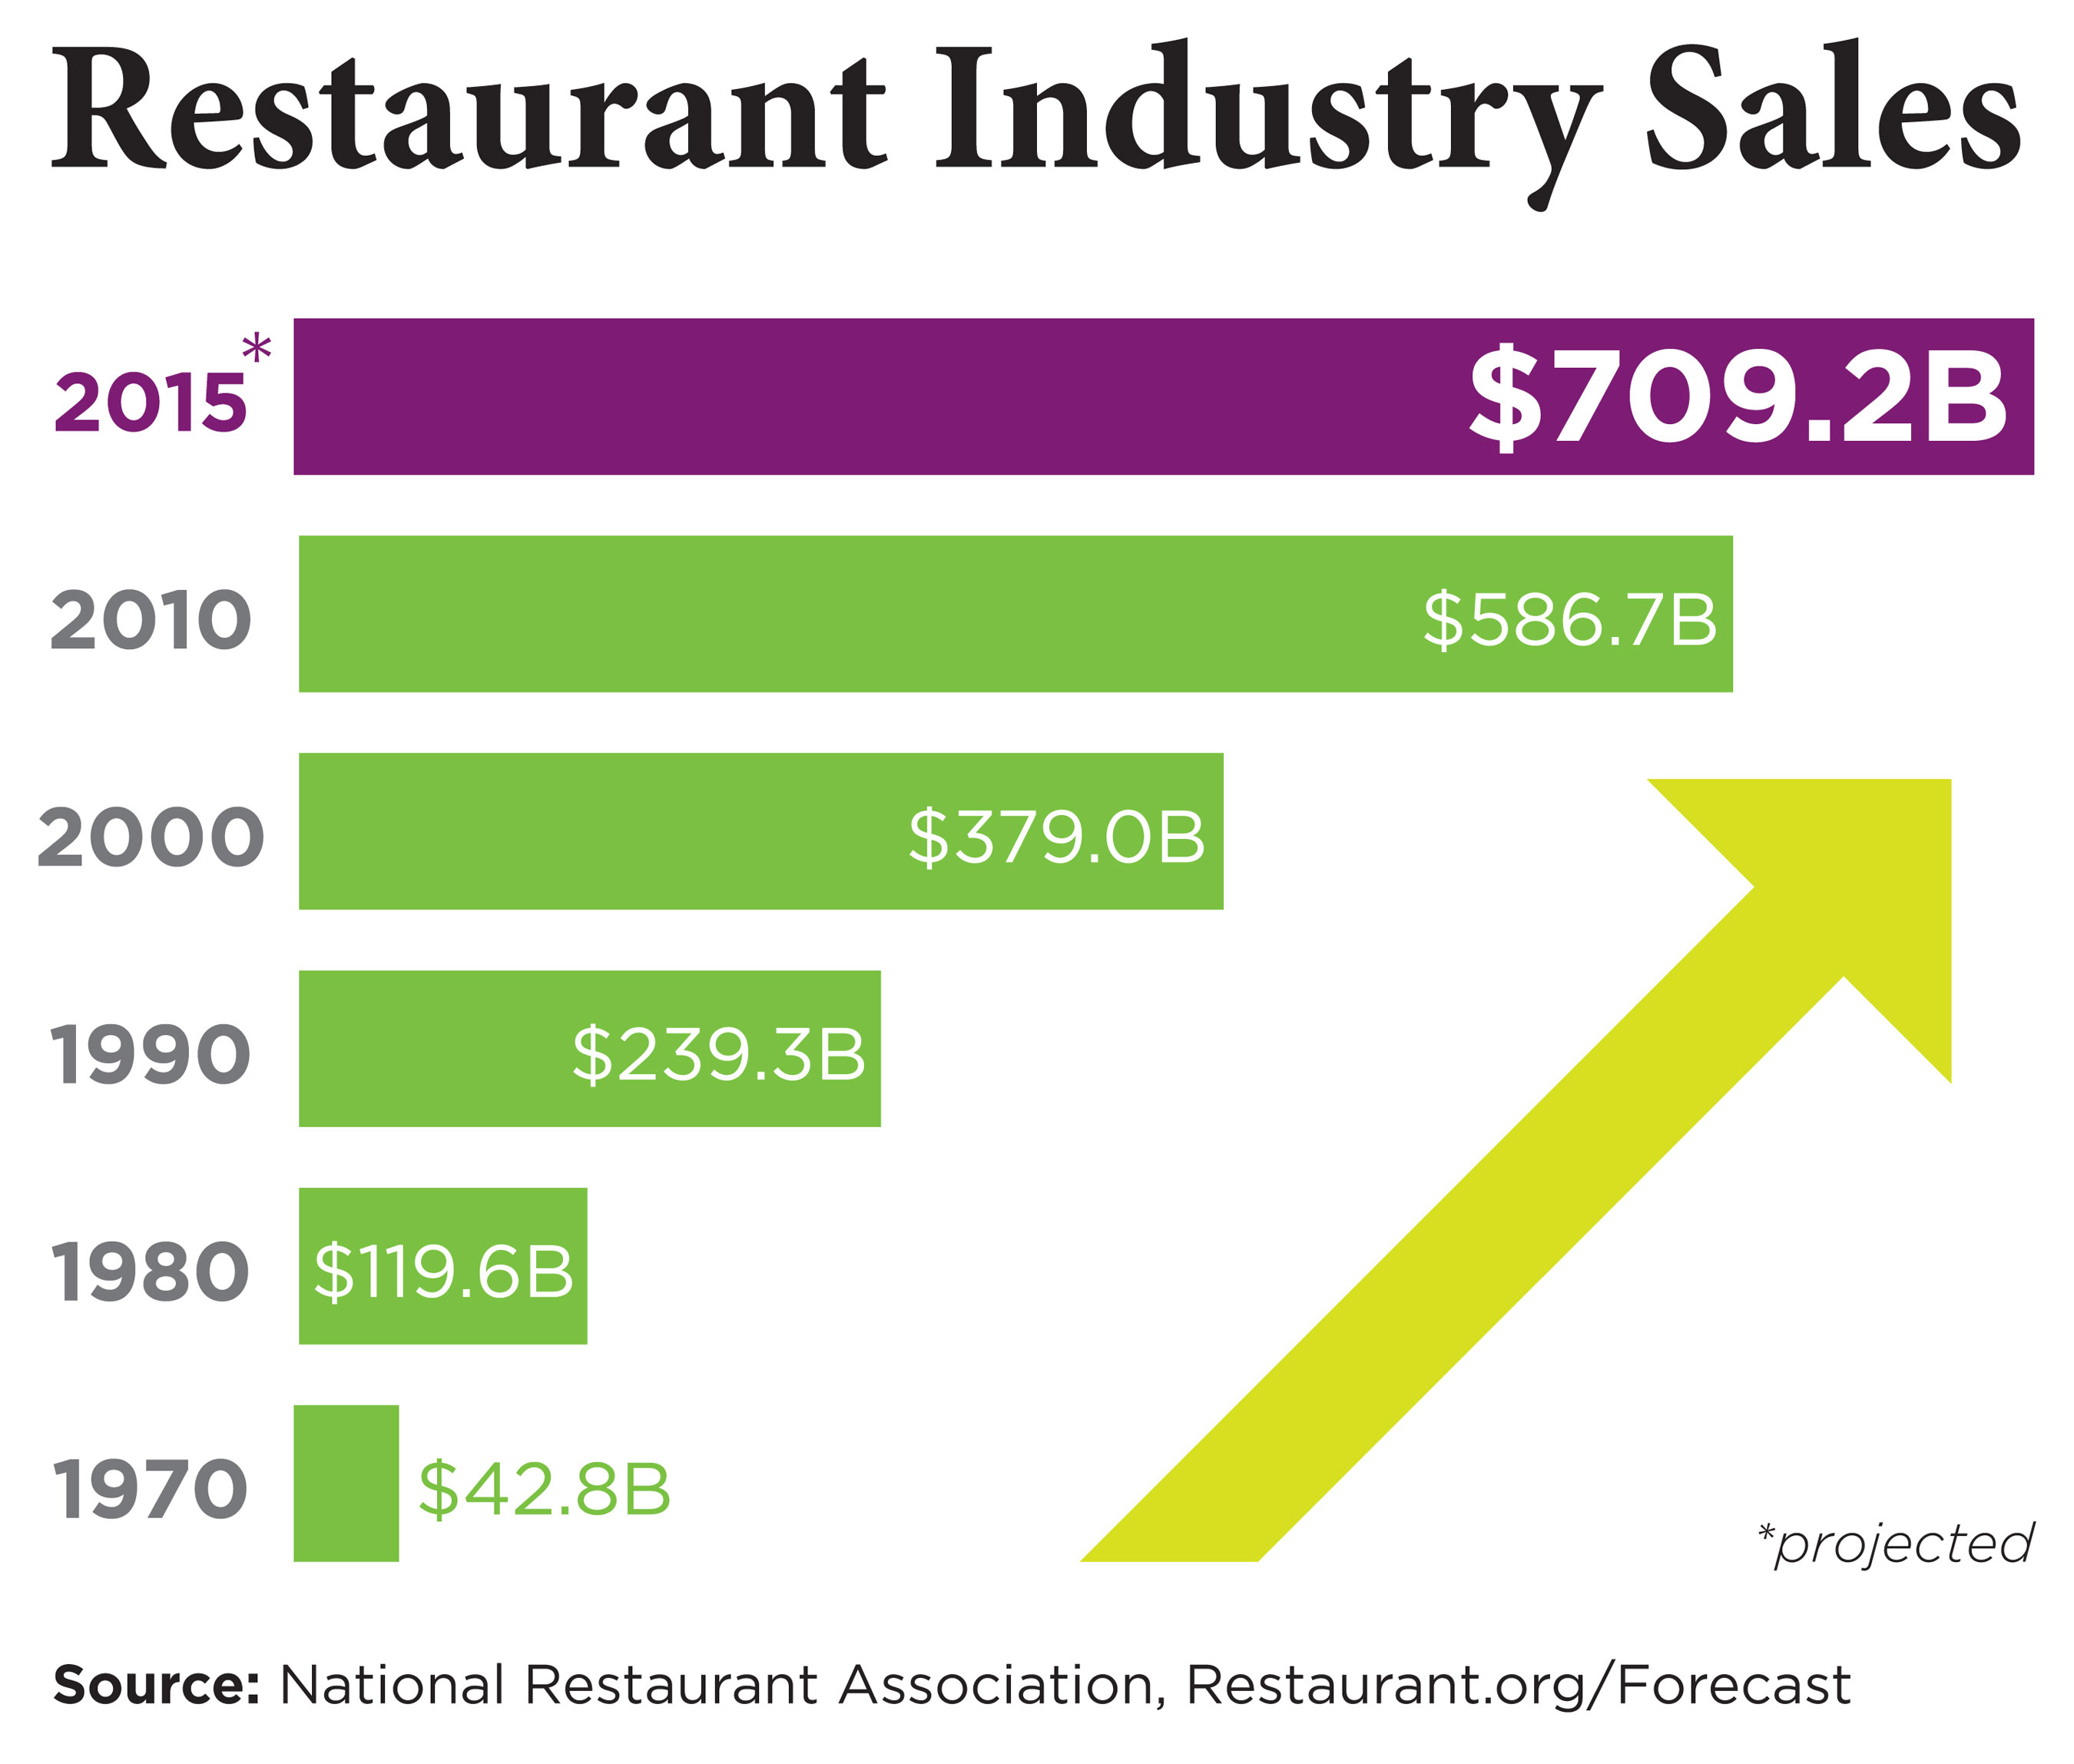 Restaurant Industry Enters 6th Consecutive Year Of Growth Will Remain A Leader In Job Creation